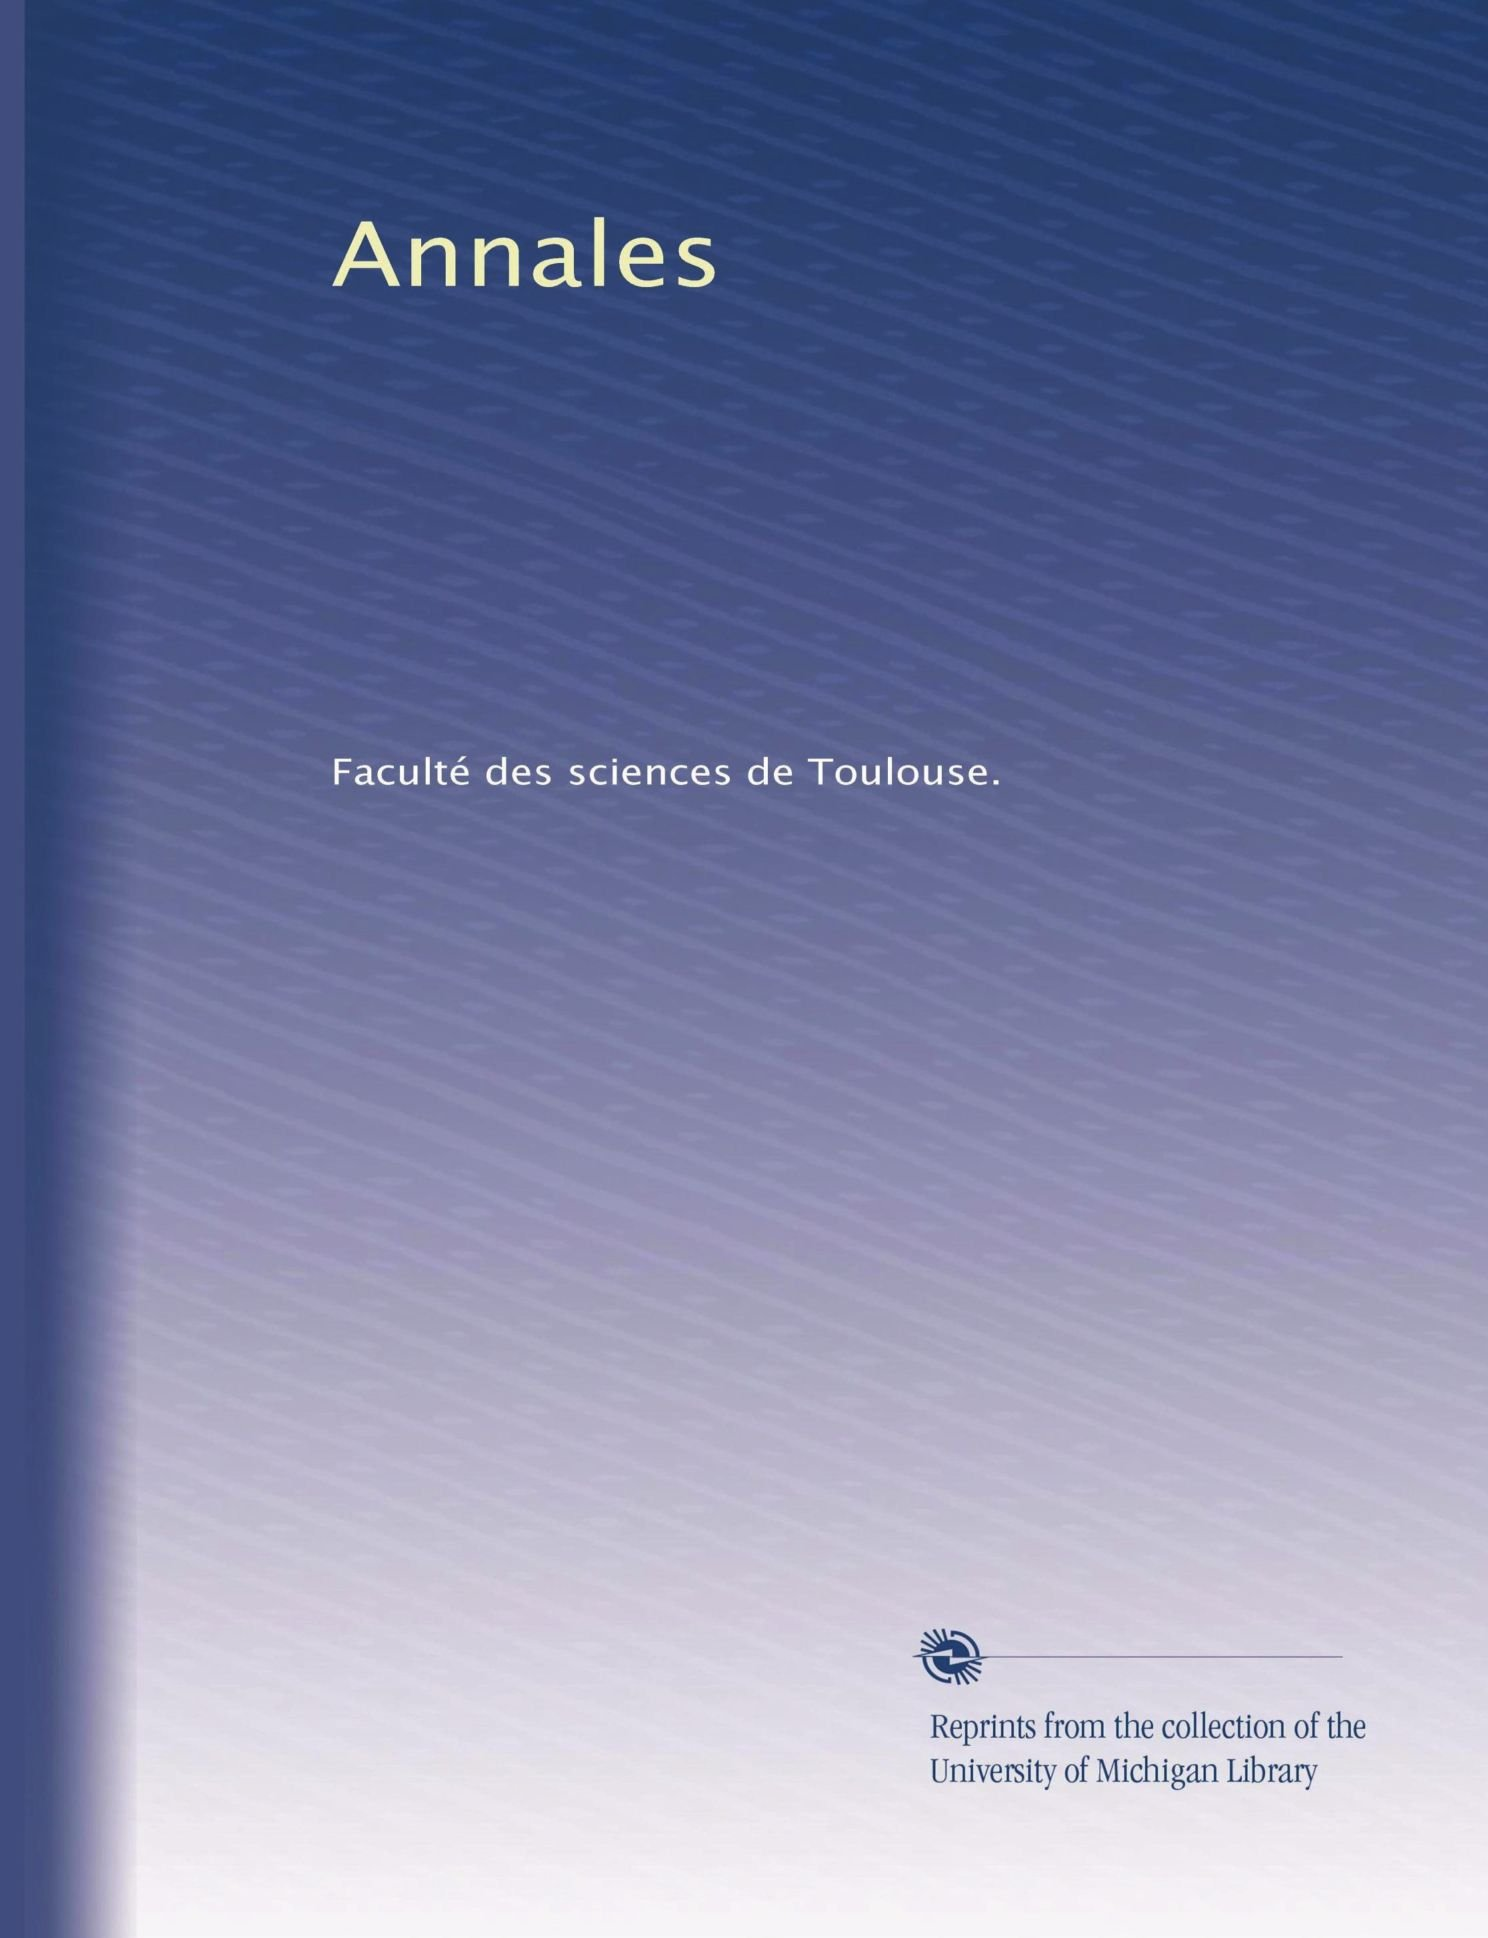 Download Annales (Volume 20) (French Edition) ebook